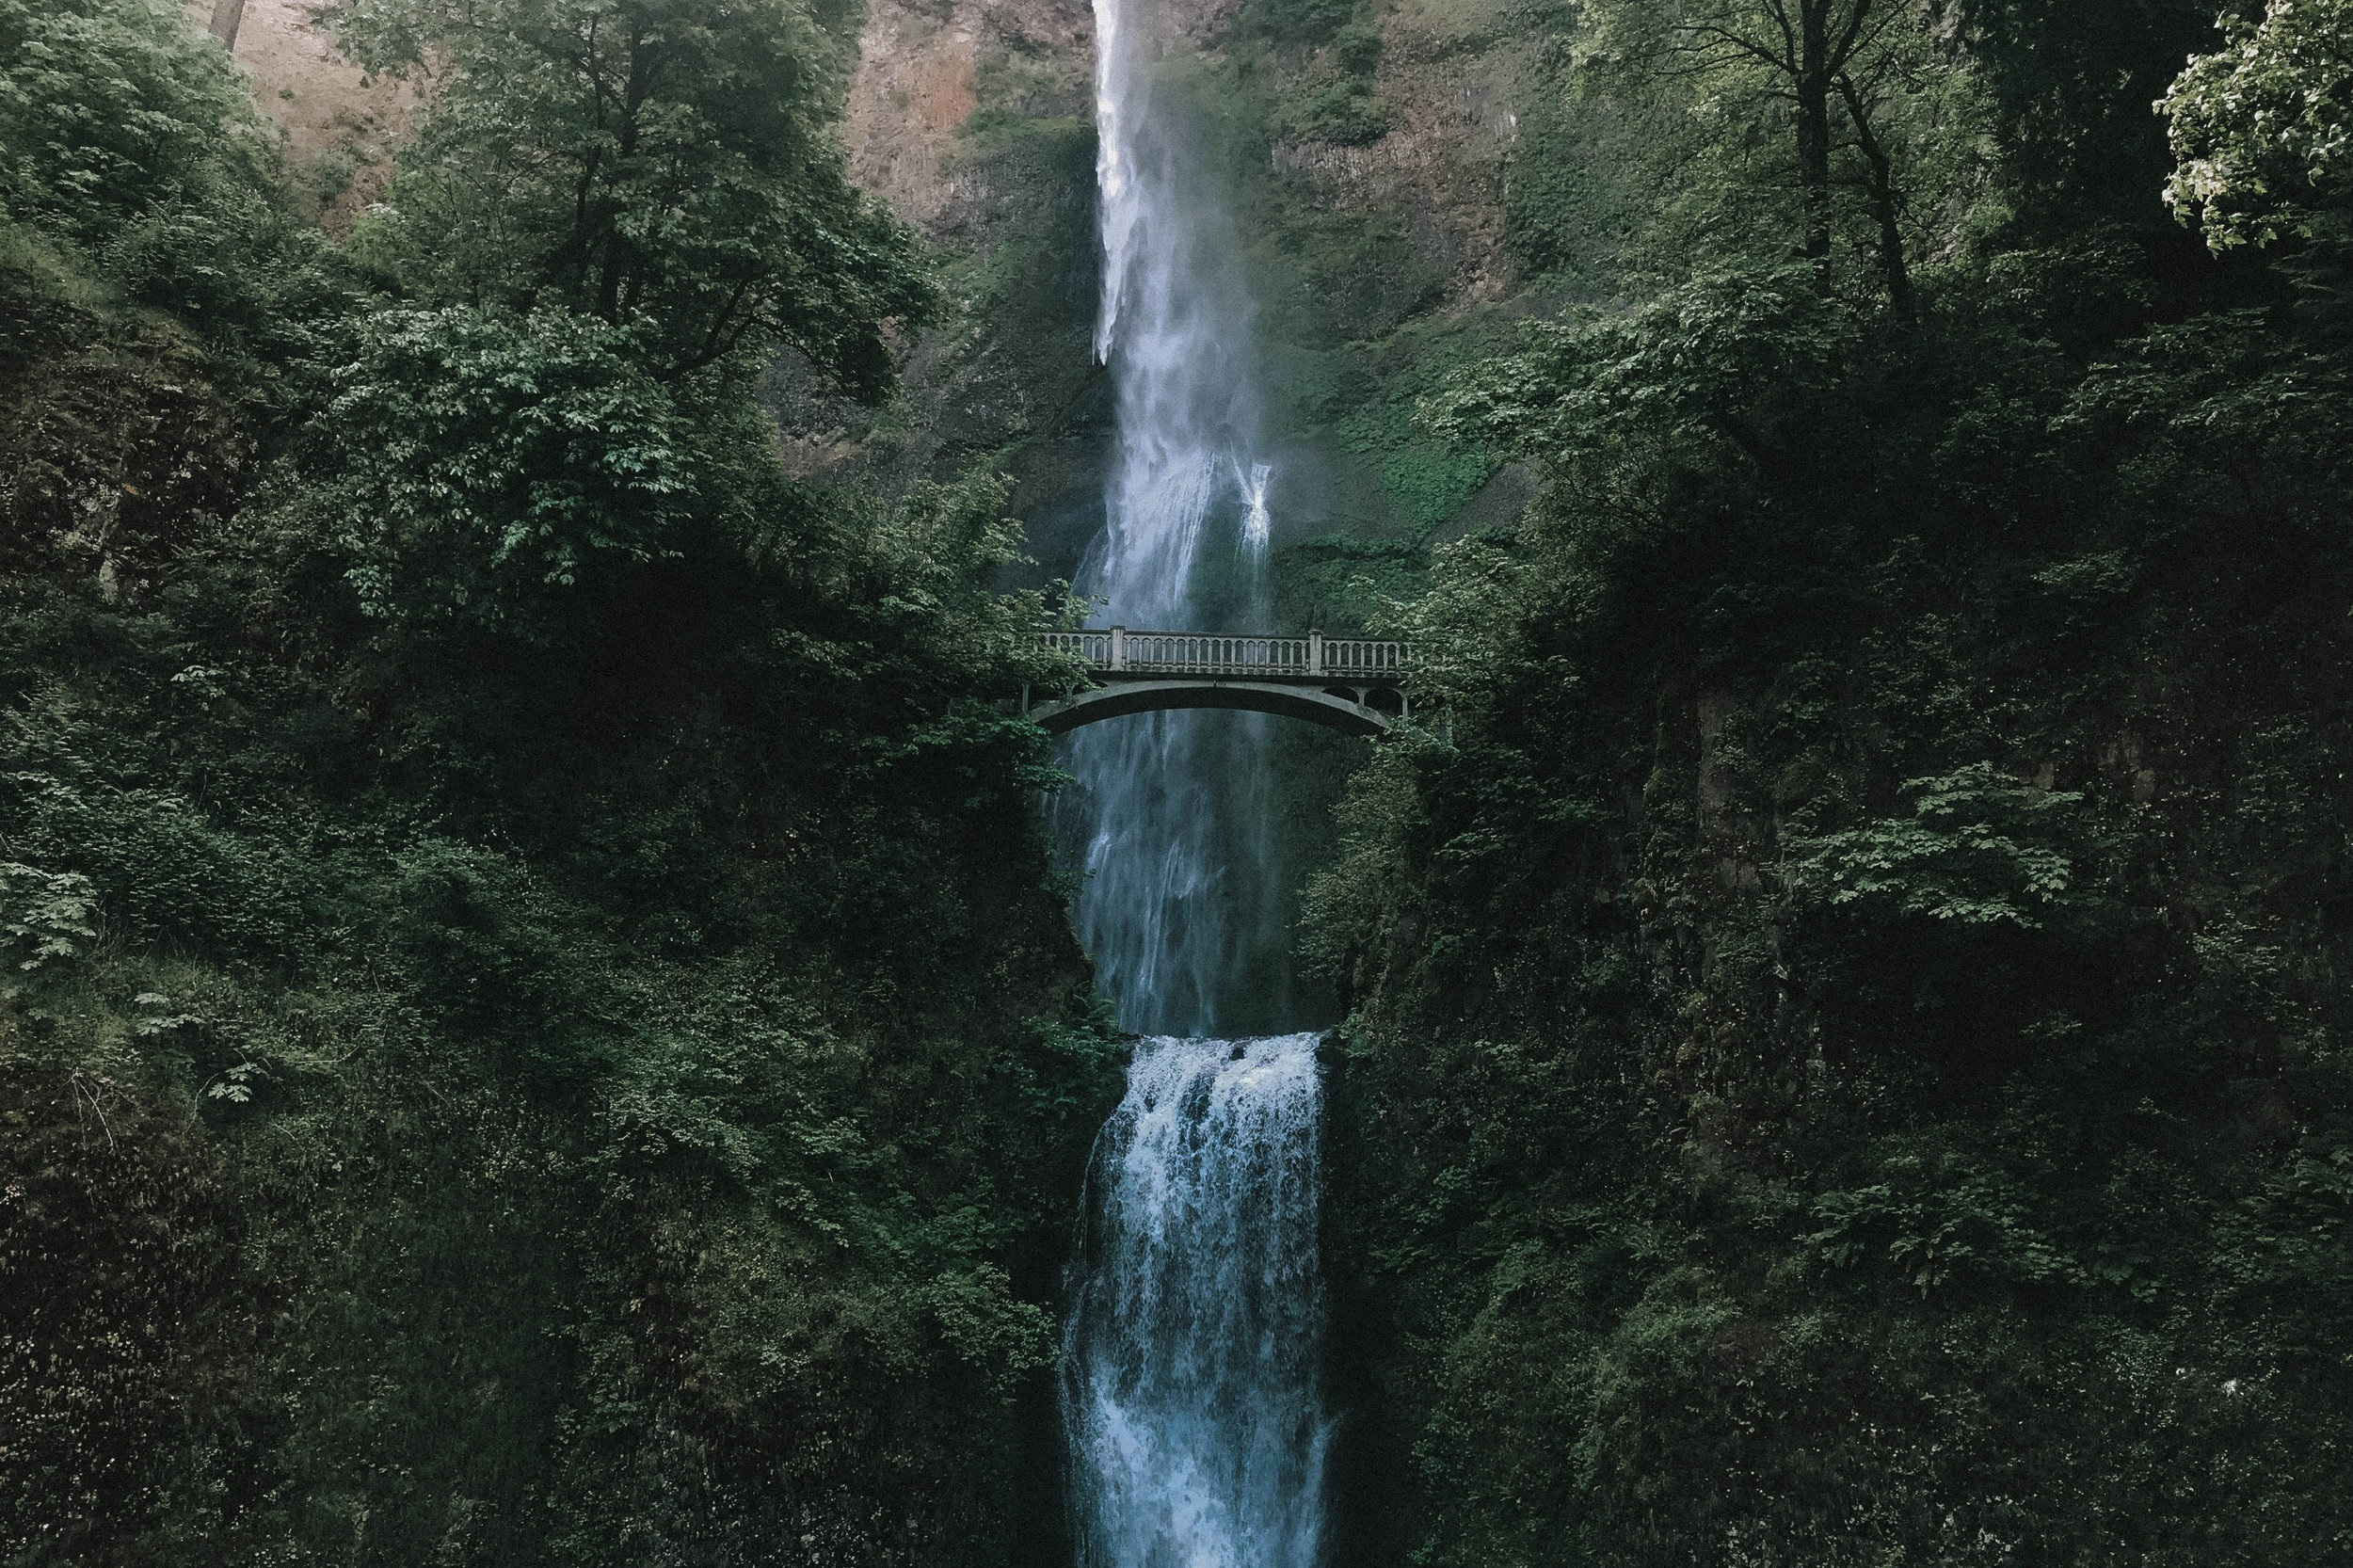 MULTNOMAH FALLS - Multnomah Falls is Oregon's tallest waterfall at 620 feet and one of the state's top natural landmarks and attractions.